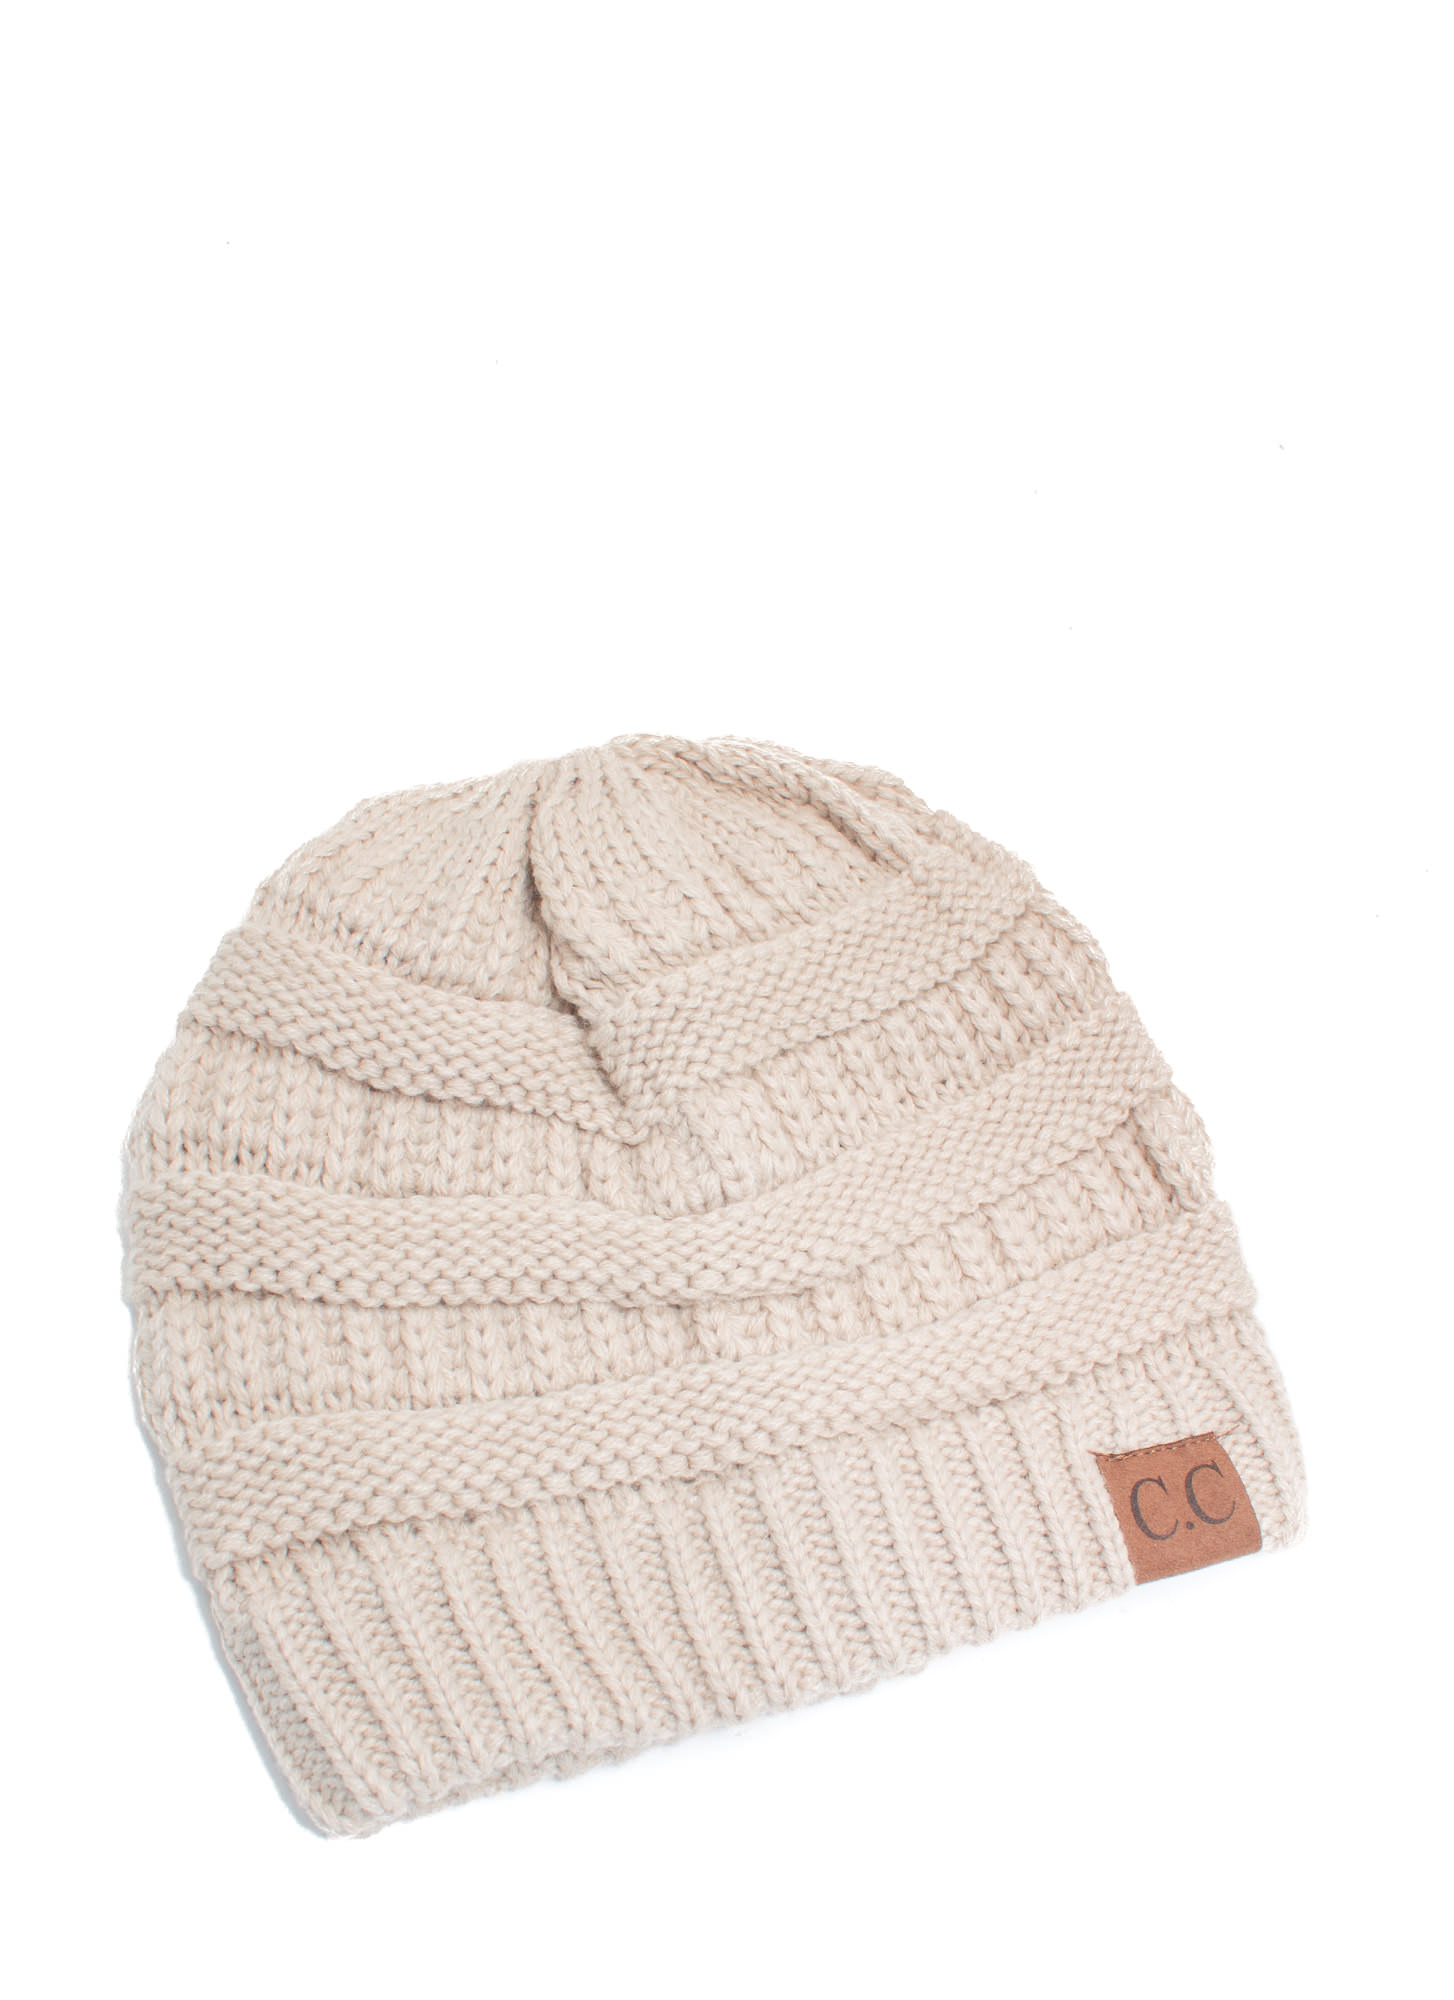 CC Cable Kit Beanie OATMEAL